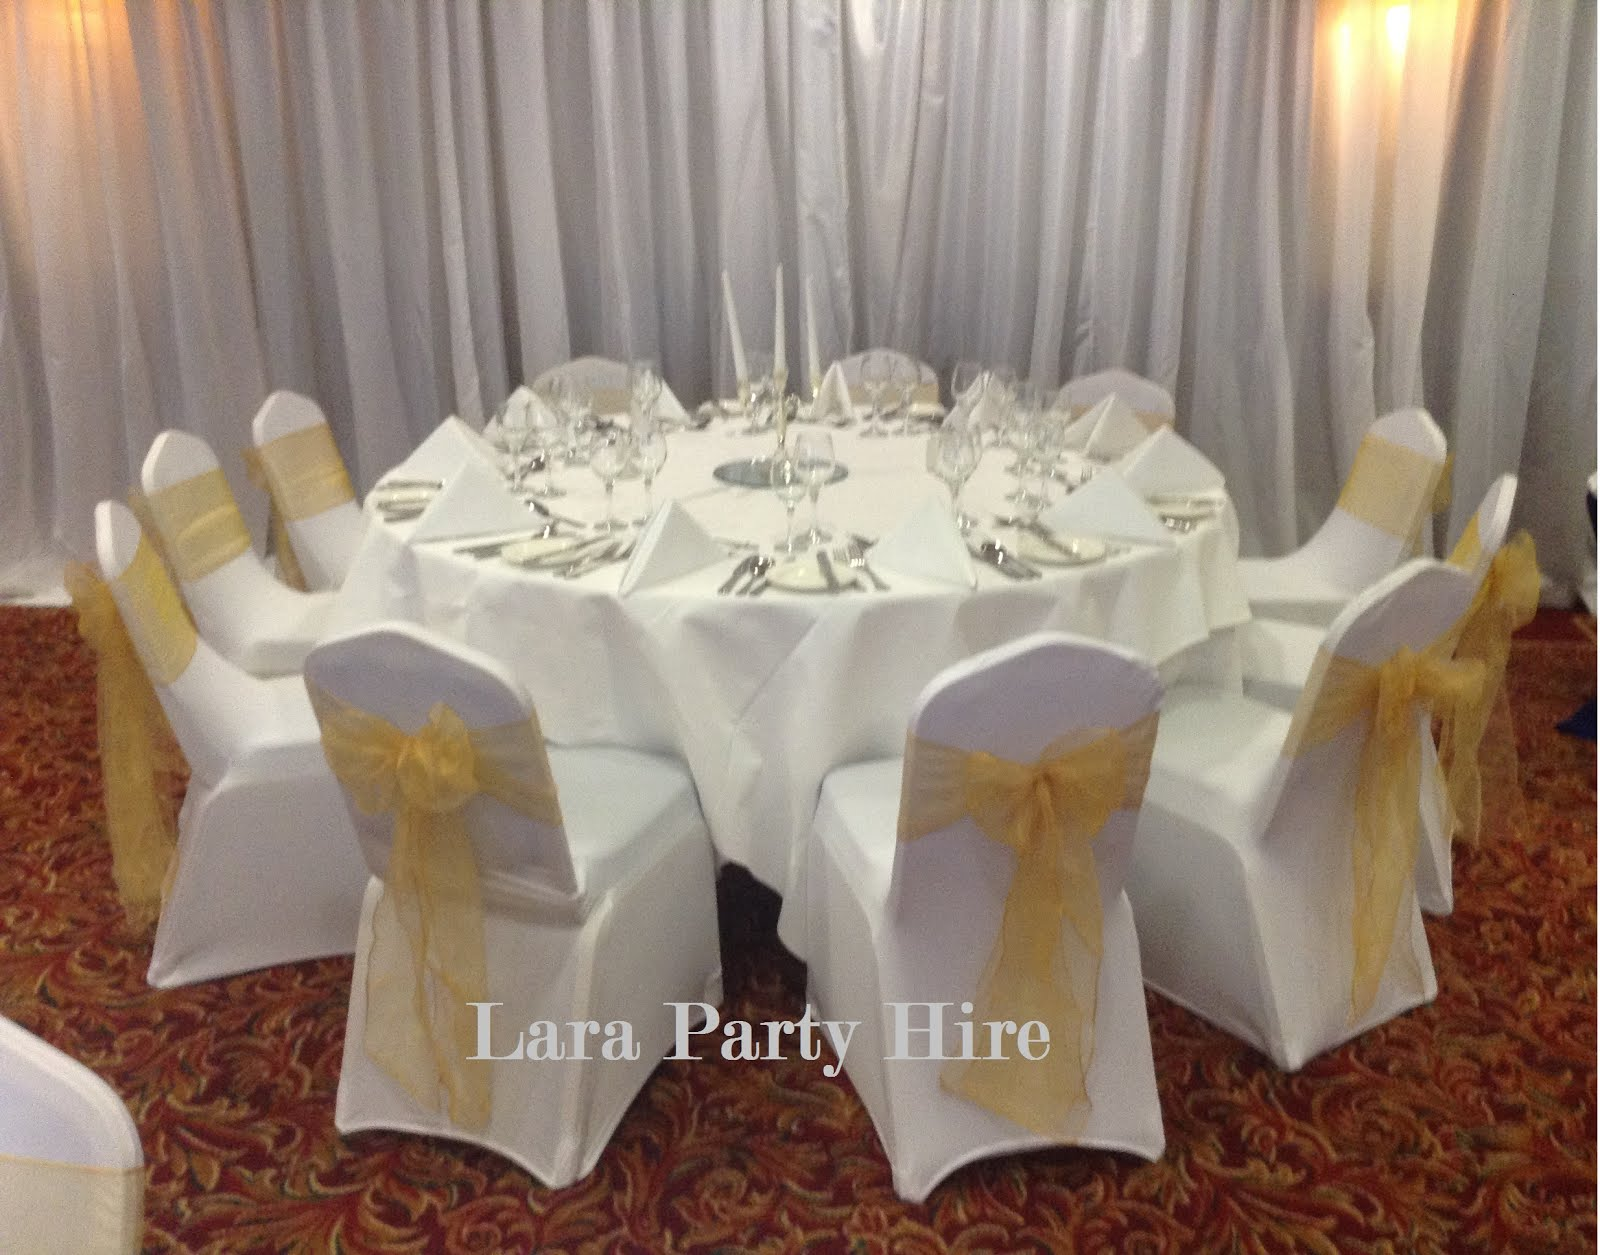 Chair covers / Gold sashes